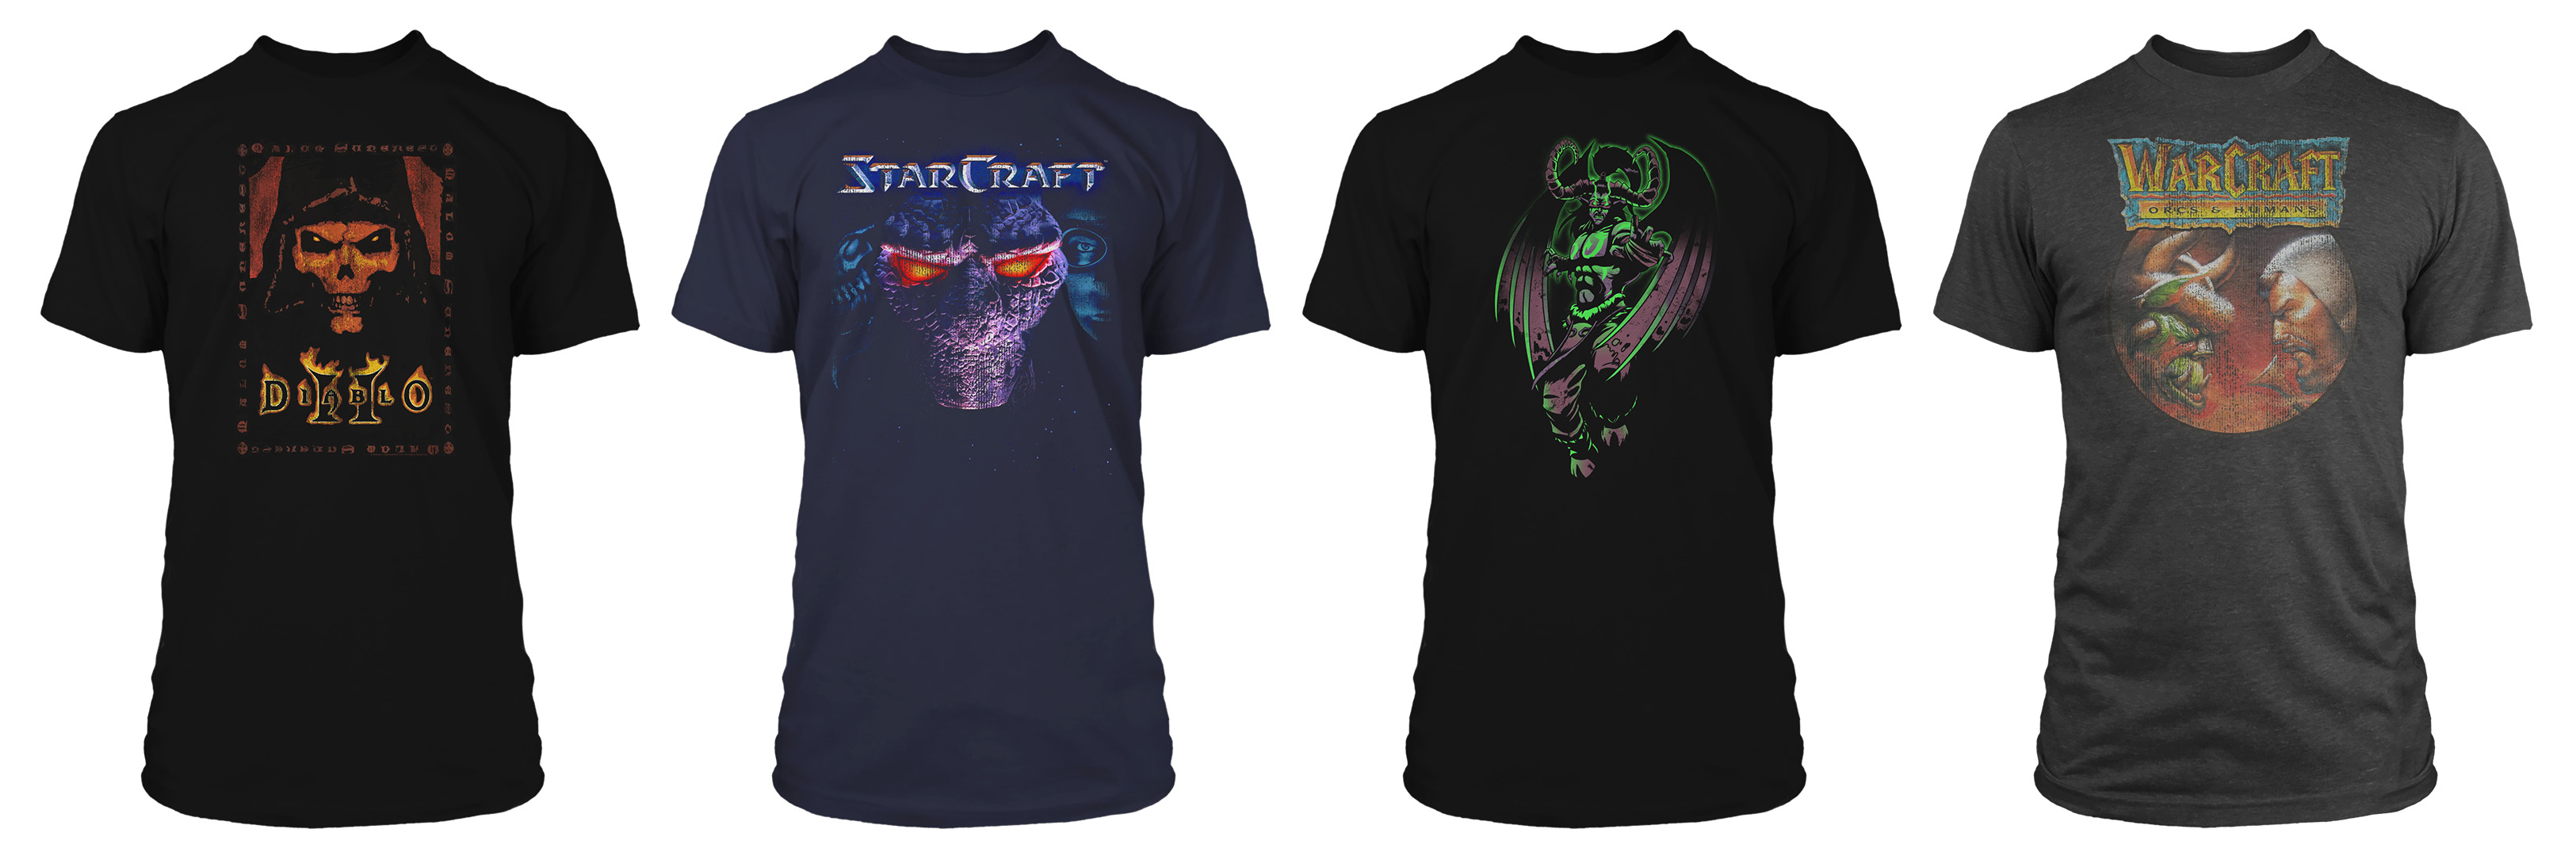 Four of the classic Diablo, Warcraft, and StarCraft T-shirts available in the Blizzard Gear Store